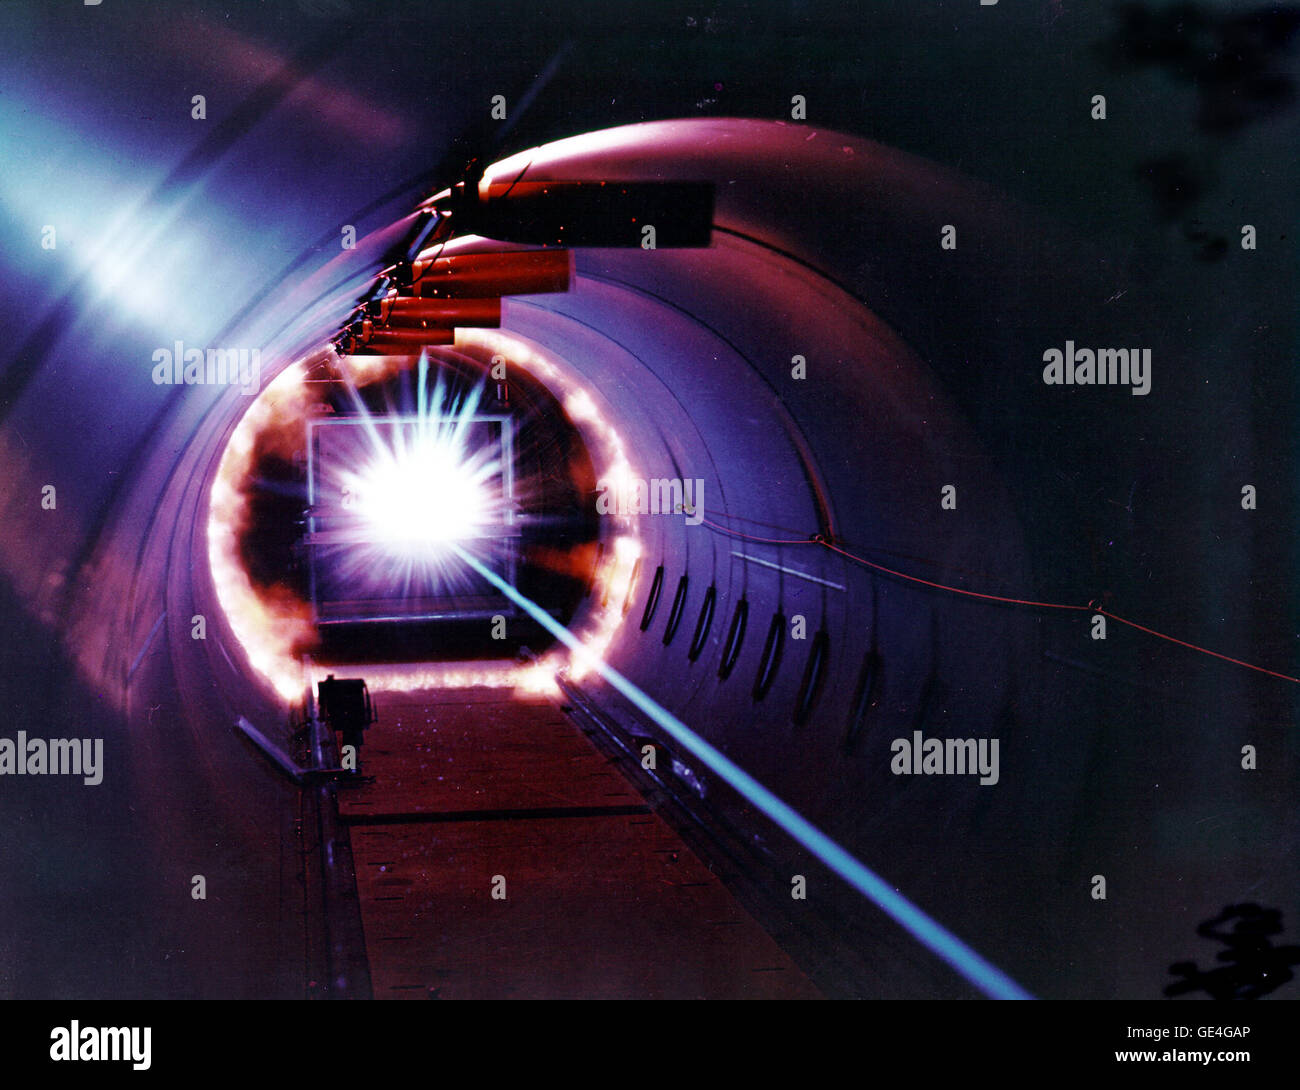 "The photo shows the ""energy flash"" when a projectile launched at speeds up to 17,000 mph impacts - Stock Image"